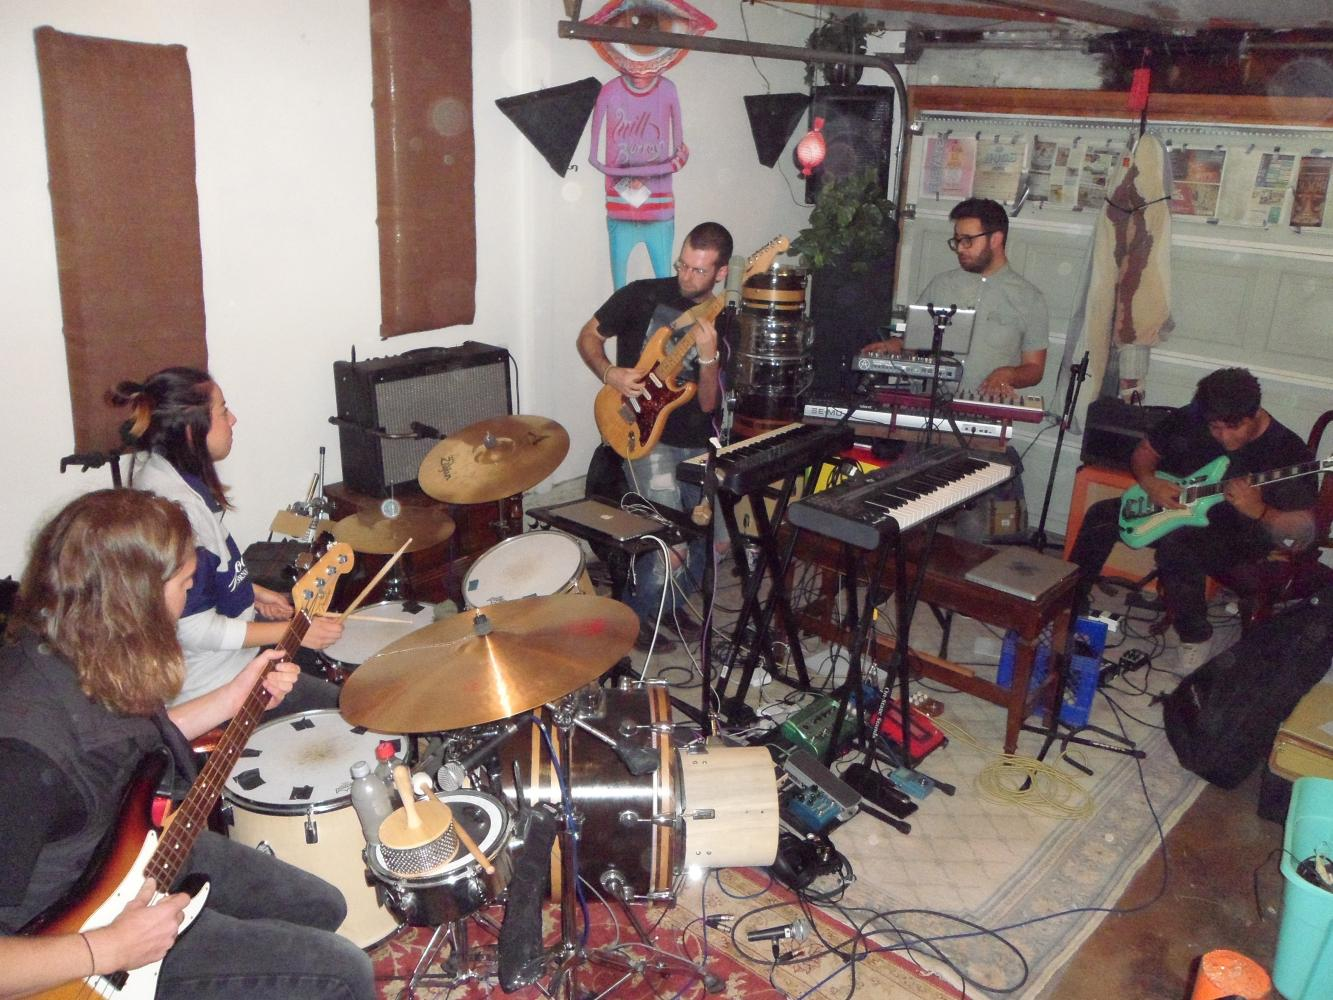 Members of the psychedelic pop band Petaluma hold a practice sesion in their garage studio on Sept. 20 ahead of their performance at City of Trees music festival. The band halts practice by 9 p.m. so as to not disturb their neighbors.